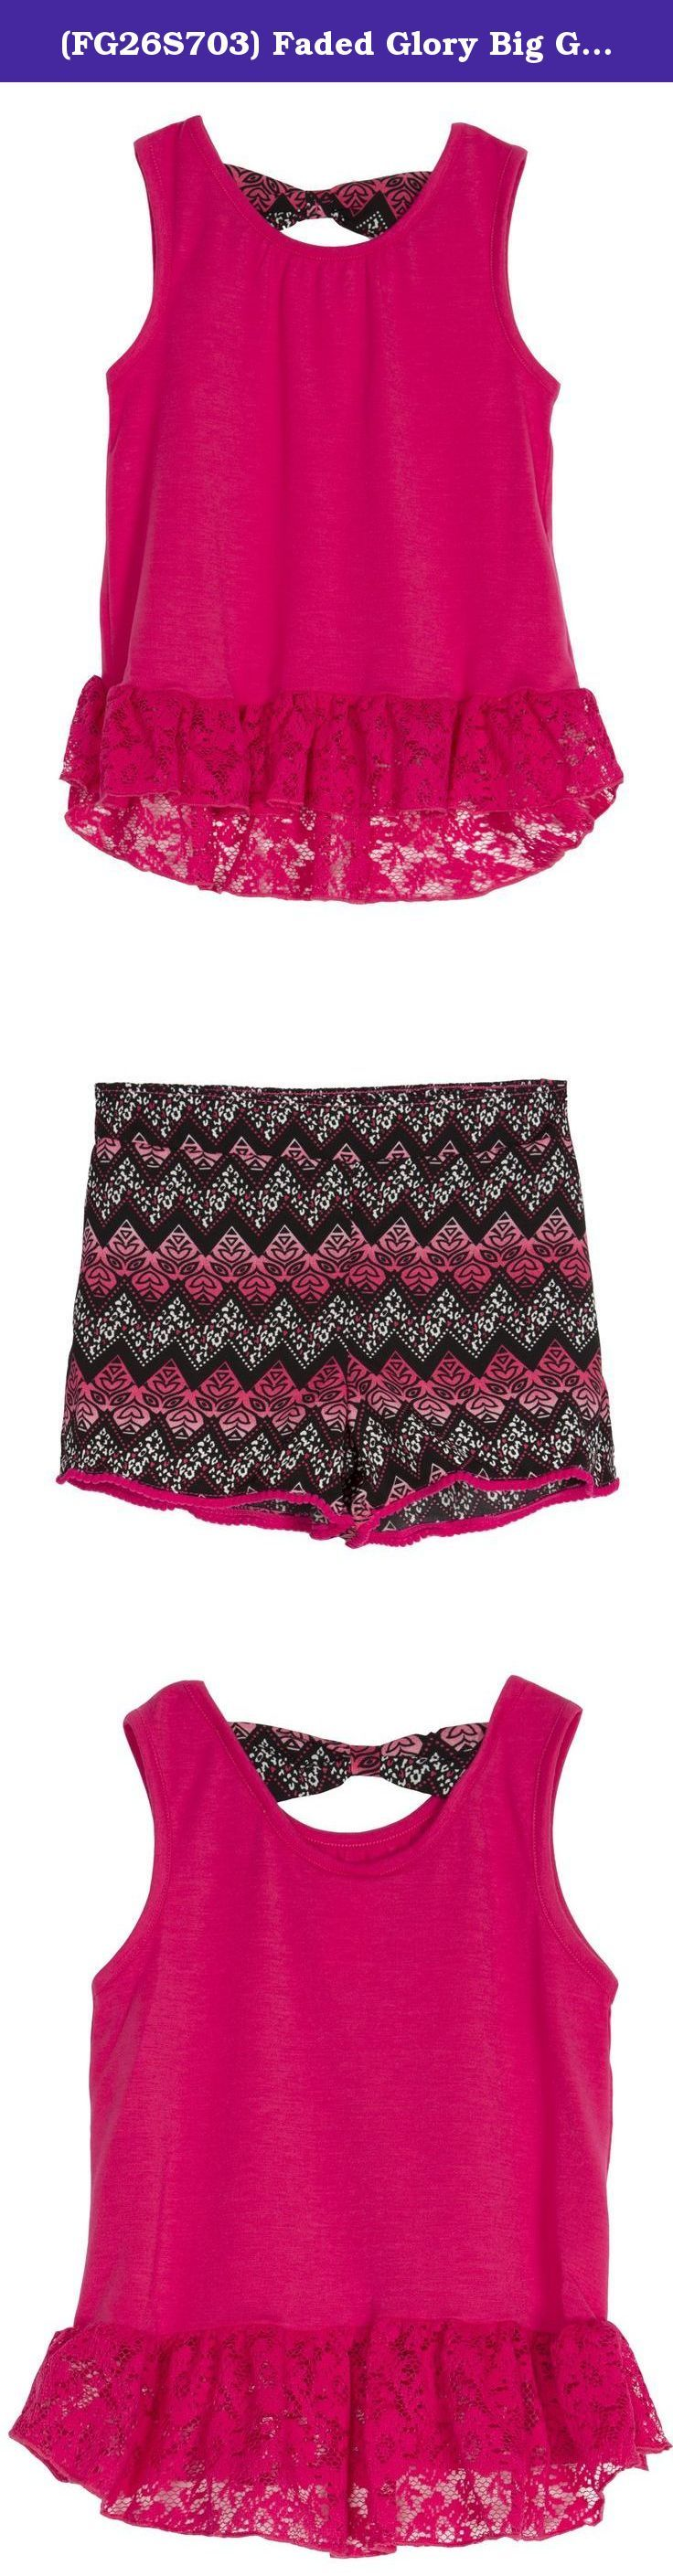 (FG26S703) Faded Glory Big Girls 2 Piece Print Challis Short Set in Fuchsia Size: 6/6X. QUALITY FABRICATION - Super soft and comfortable top is constructed from 95% Polyester Jersey with 5% Spandex for stretch. The bottoms are 100% Polyester Challis ( a durable, silk like fabric). DON'T FORGET THE TRIMMINGS - The top features a dyed to match lace flounce and the shorts have a ball fringe in the same color. FASHION FORWARD - but comfortable mixed media top and bottom set. SHARP PRINTS -...